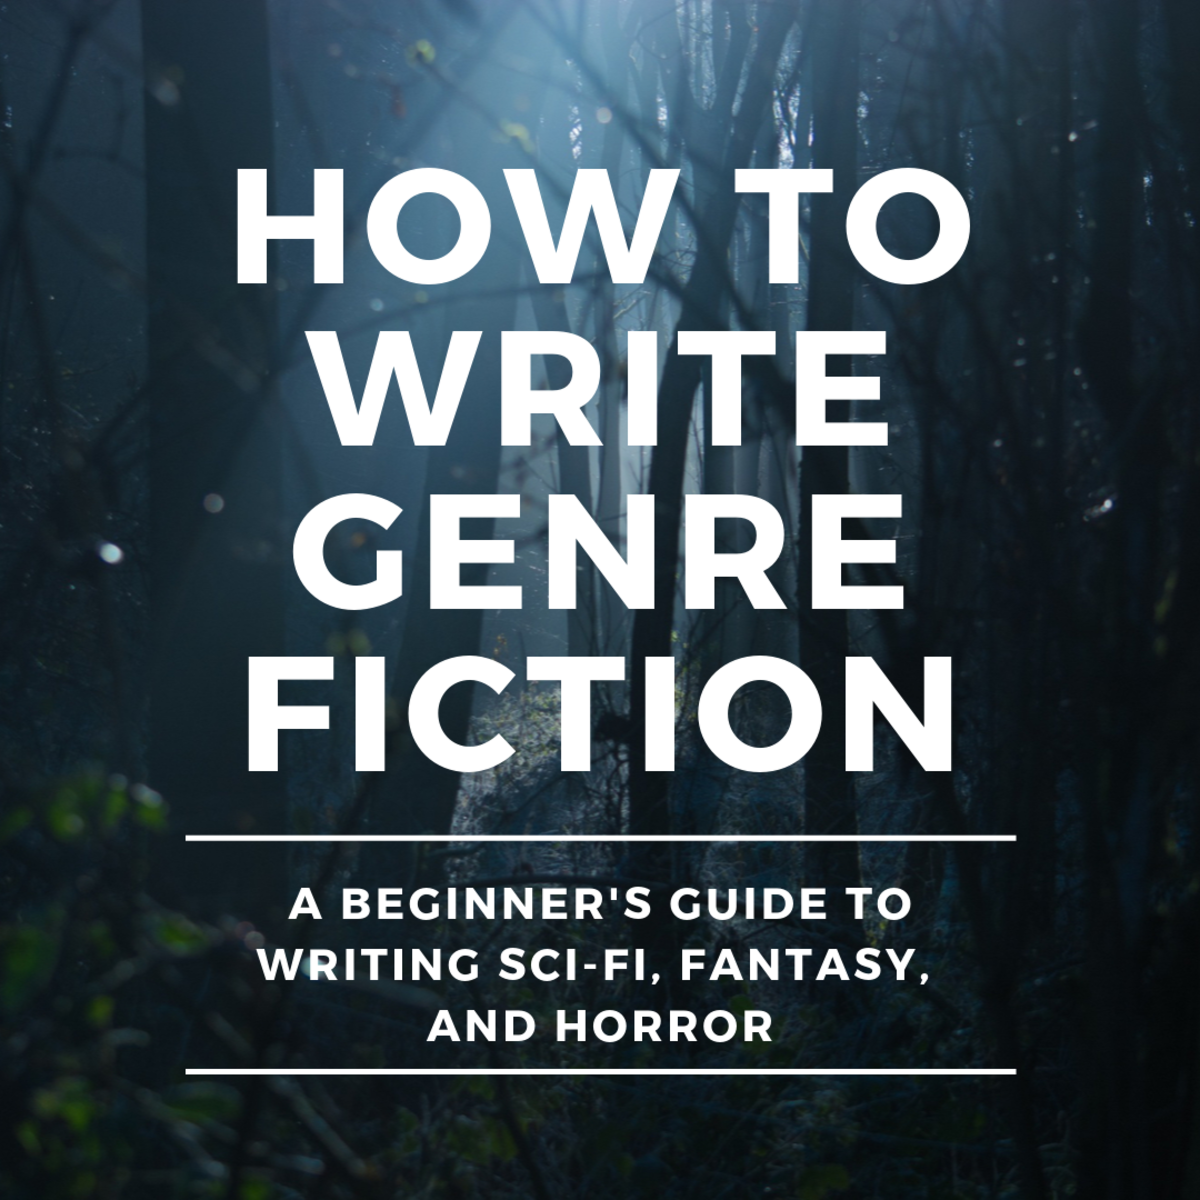 If you want to write genre fiction, this is the place to start.